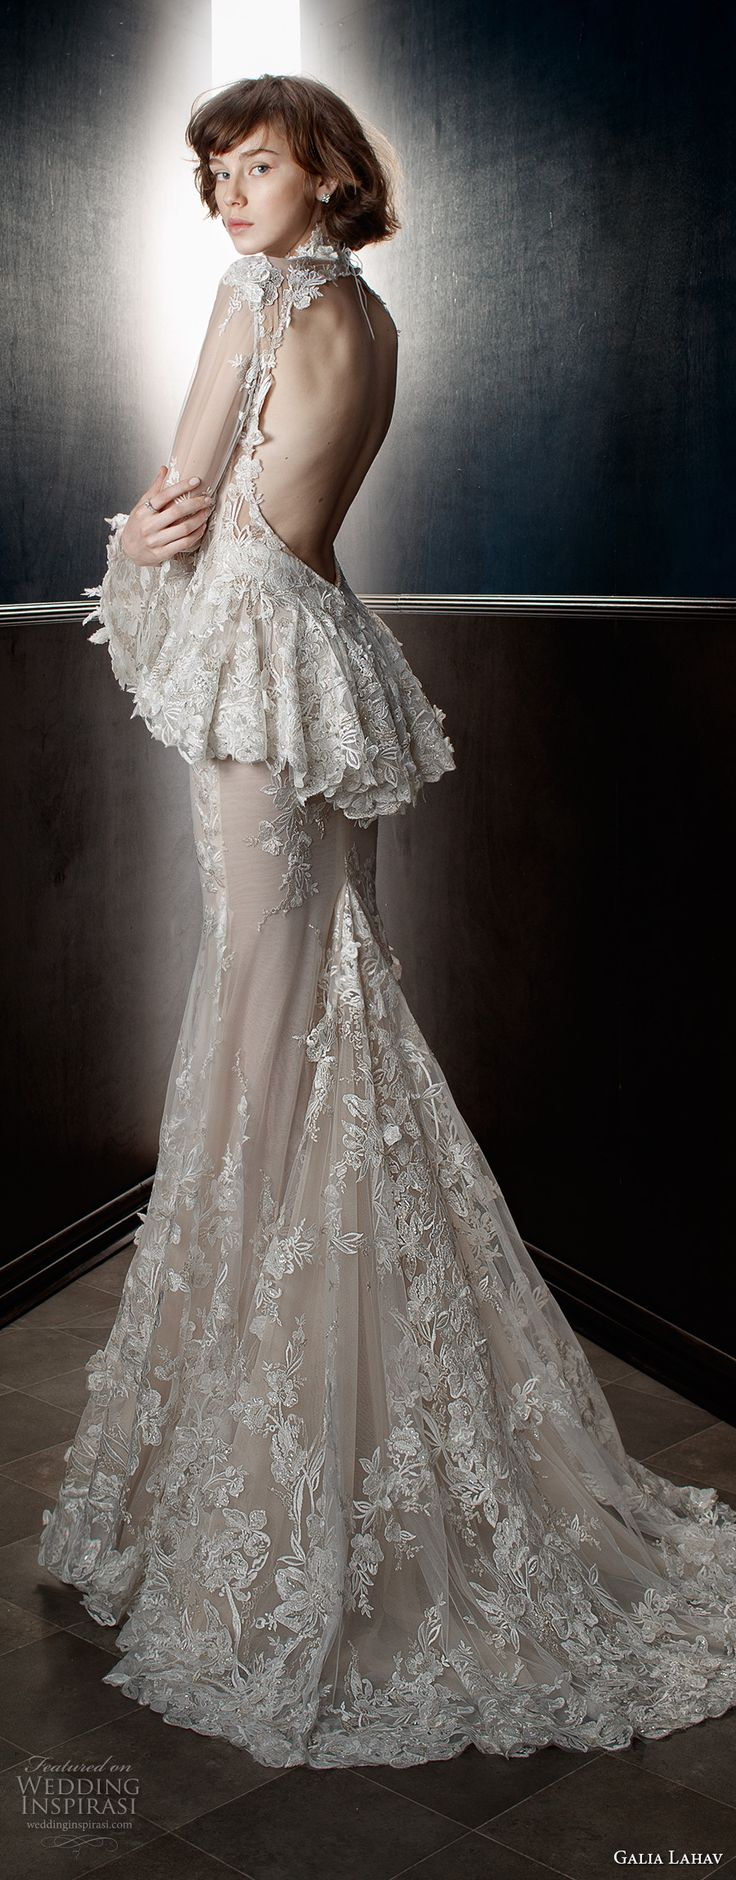 best Shipwrecked images on Pinterest Marriage Beach weddings